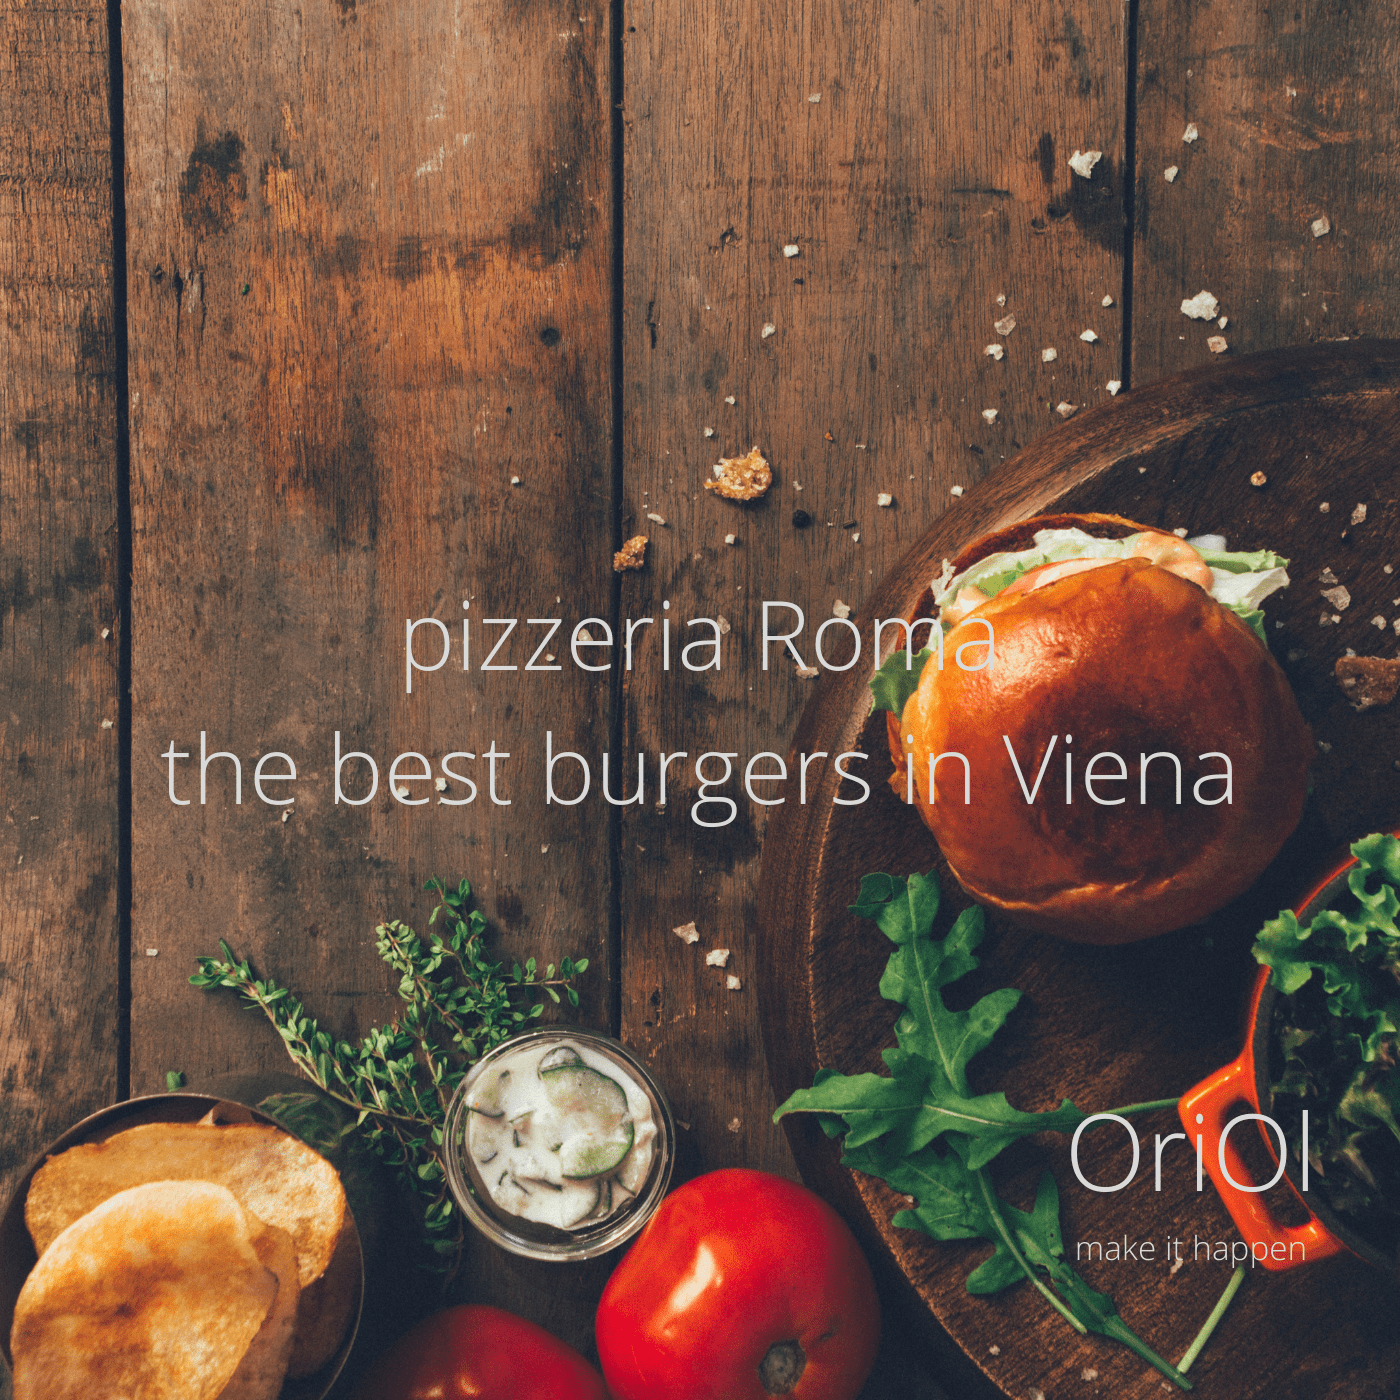 Pizzeria Roma, the best  burgers in Viena. El valor de la coherencia